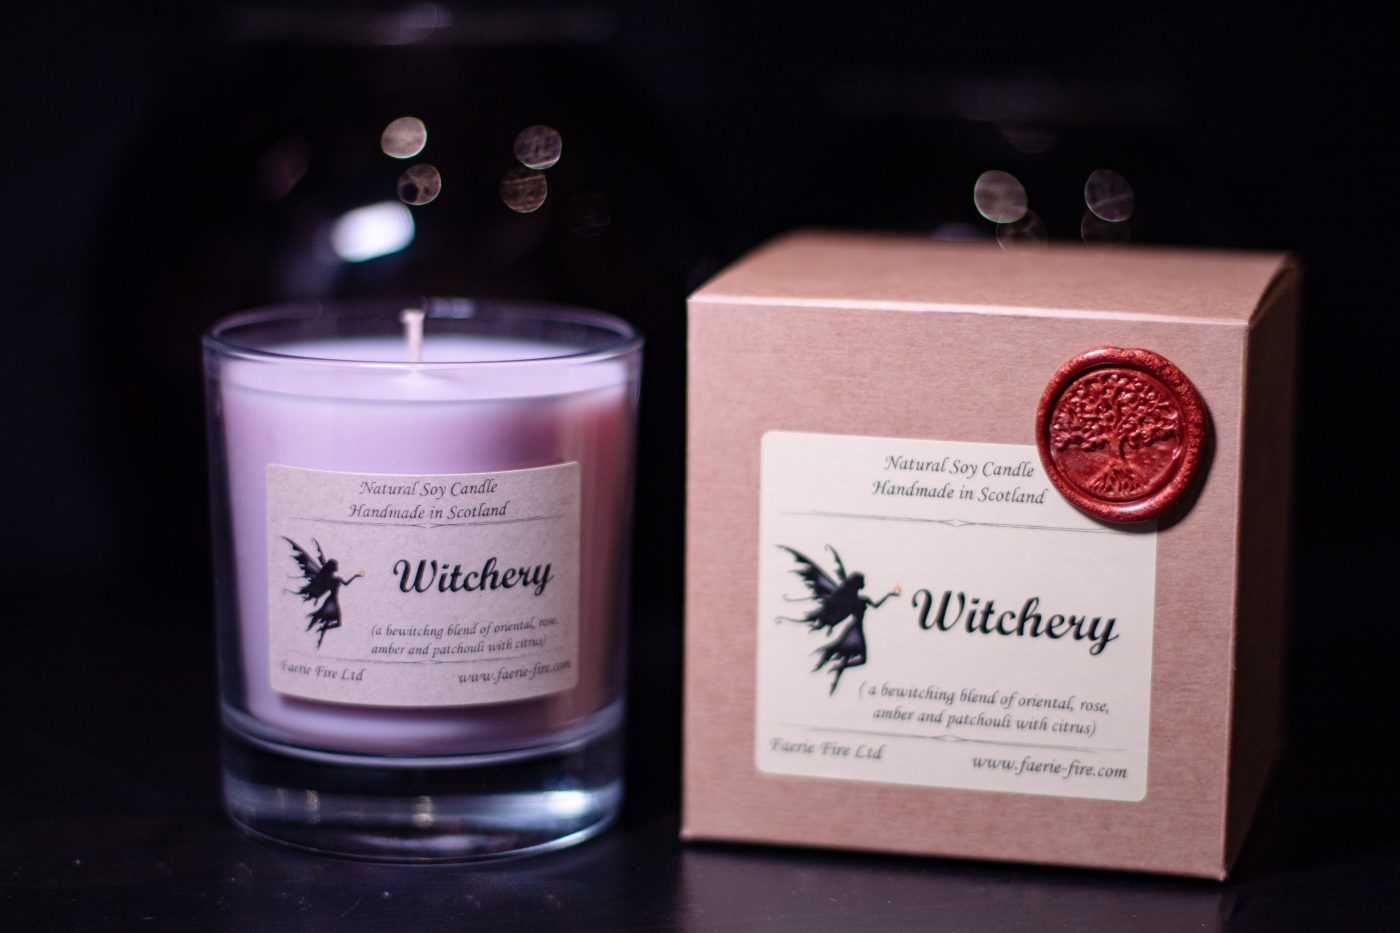 Witchery Soy Wax Jar Candle with box scaled